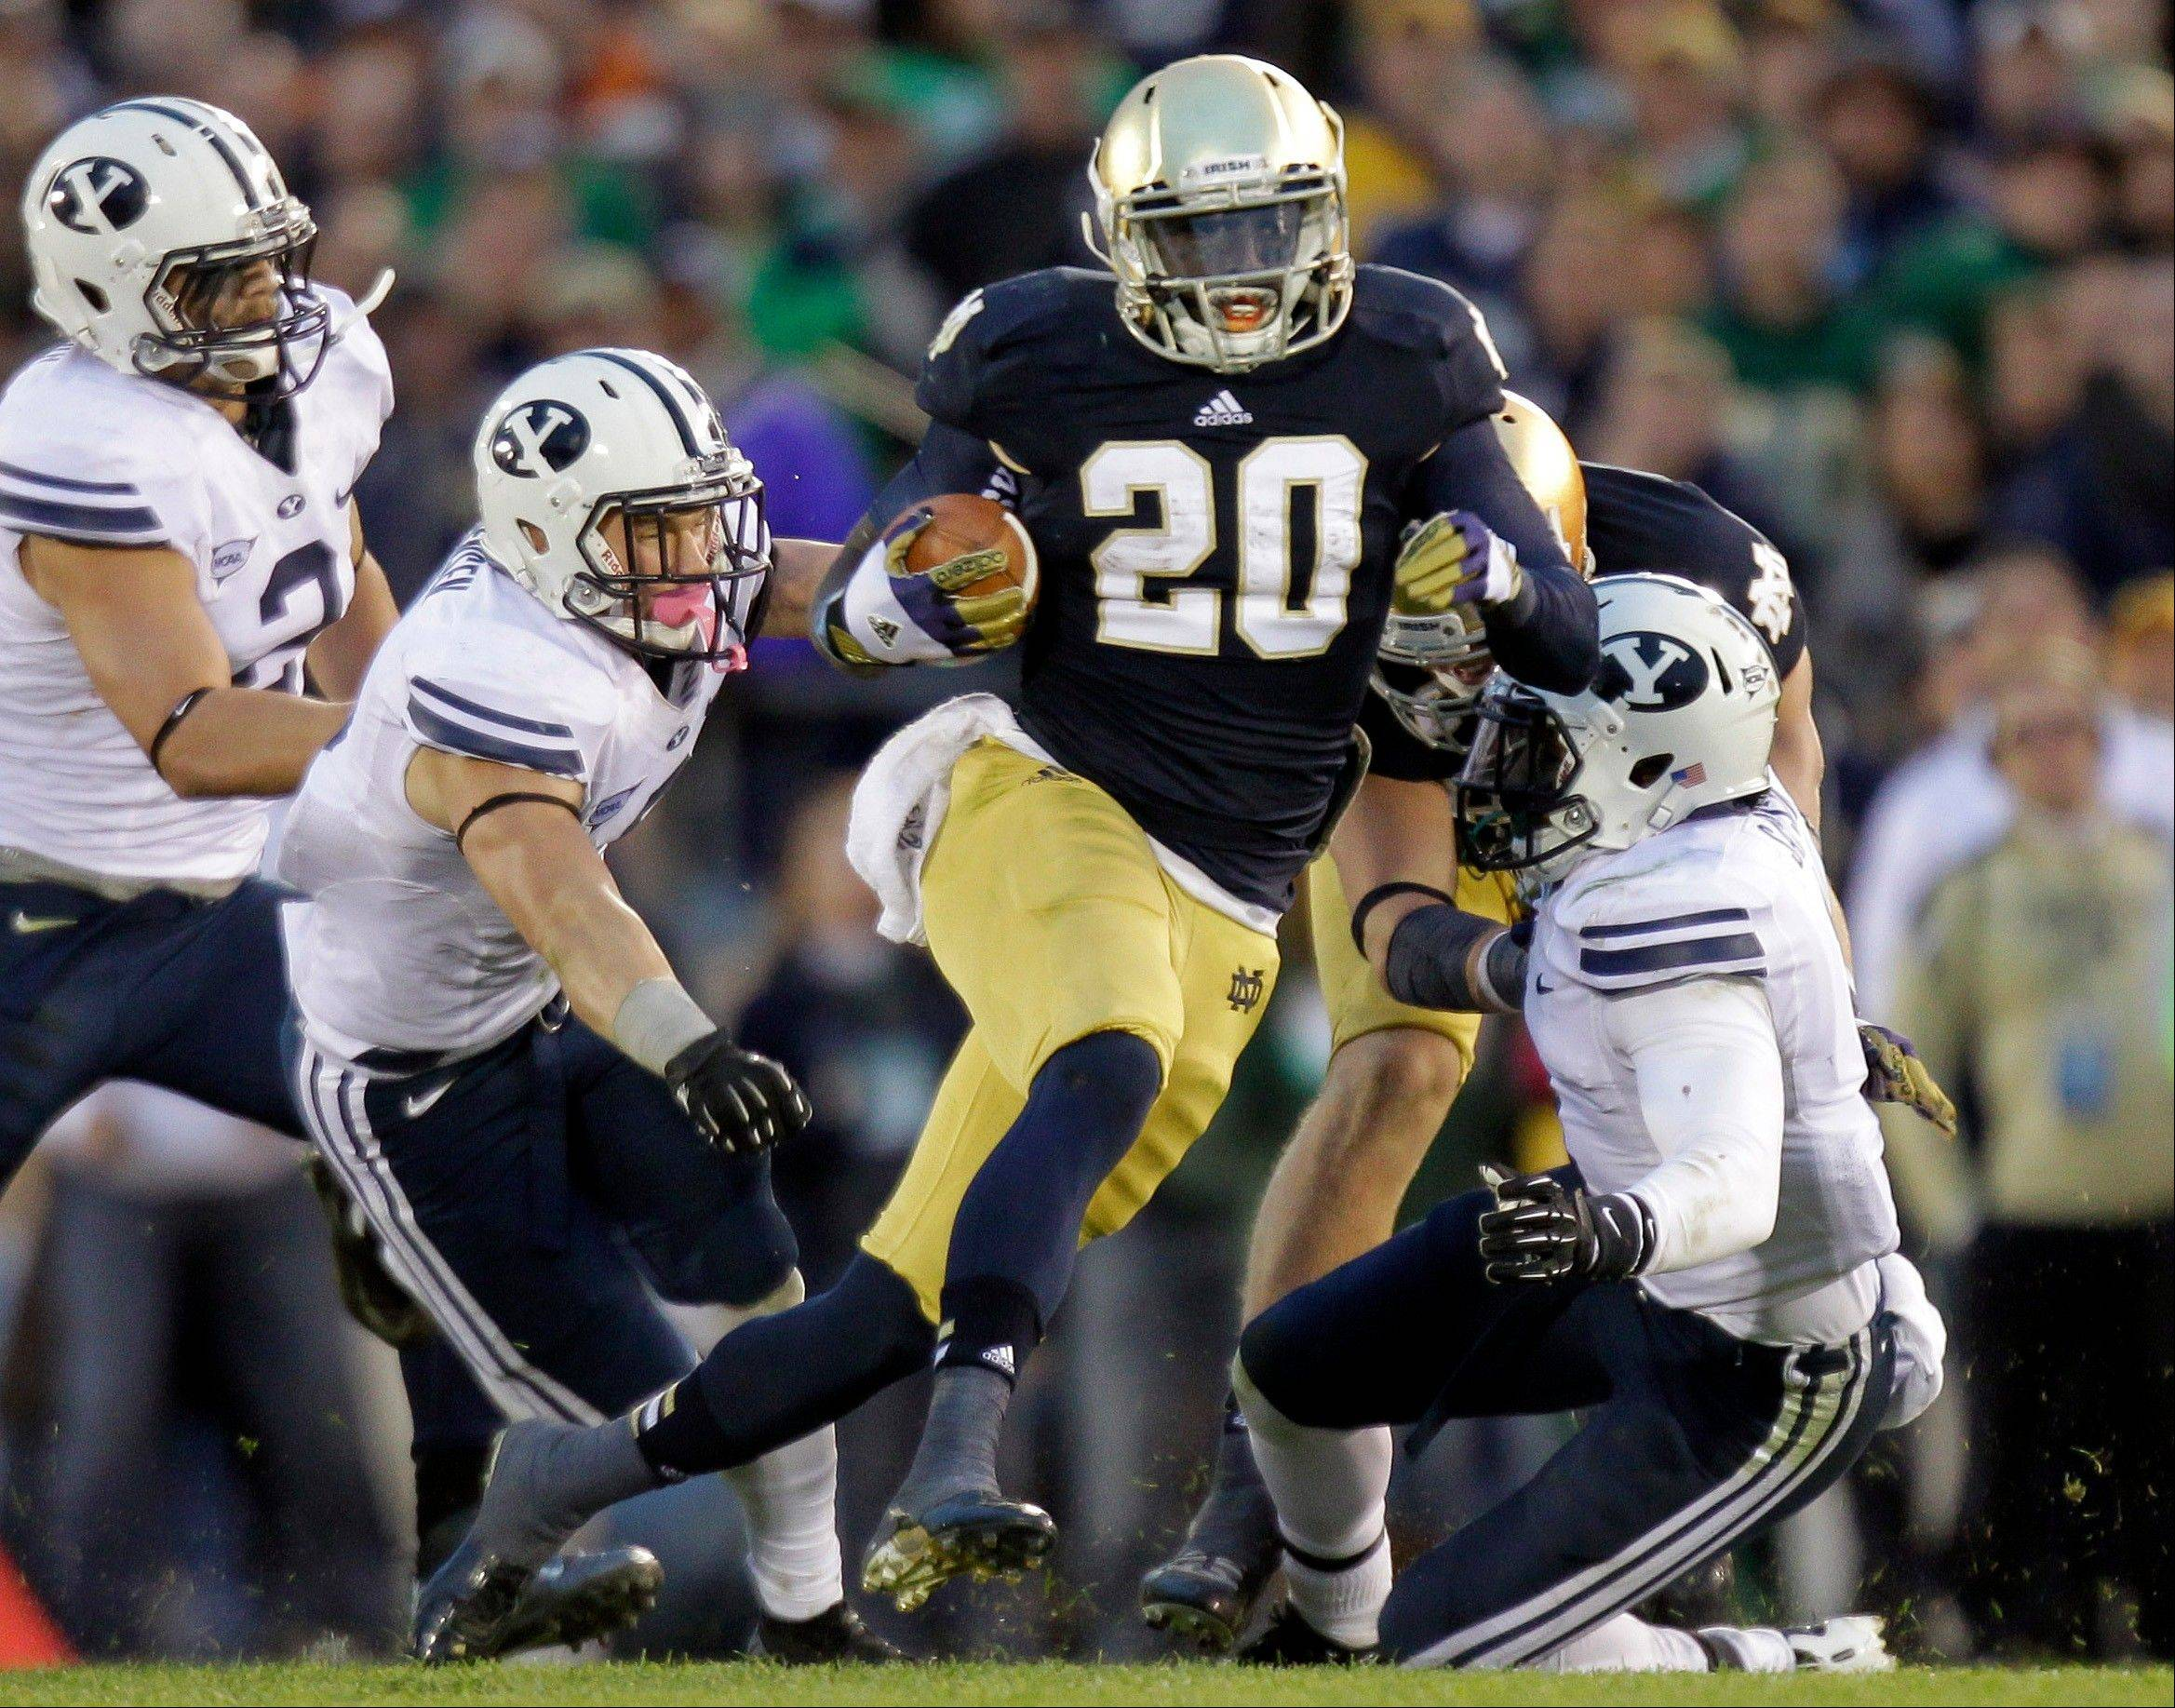 Notre Dame running back Cierre Wood, center, cuts between Brigham Young defenders Spencer Hadley, left, Daniel Sorensen, left center, and Joe Sampson. With the national championship on the line, two throwback offenses will slug it out. No. 1 Notre Dame and No. 2 Alabama rely heavily on the run, and that doesn�t figure to change in the biggest game of the year.